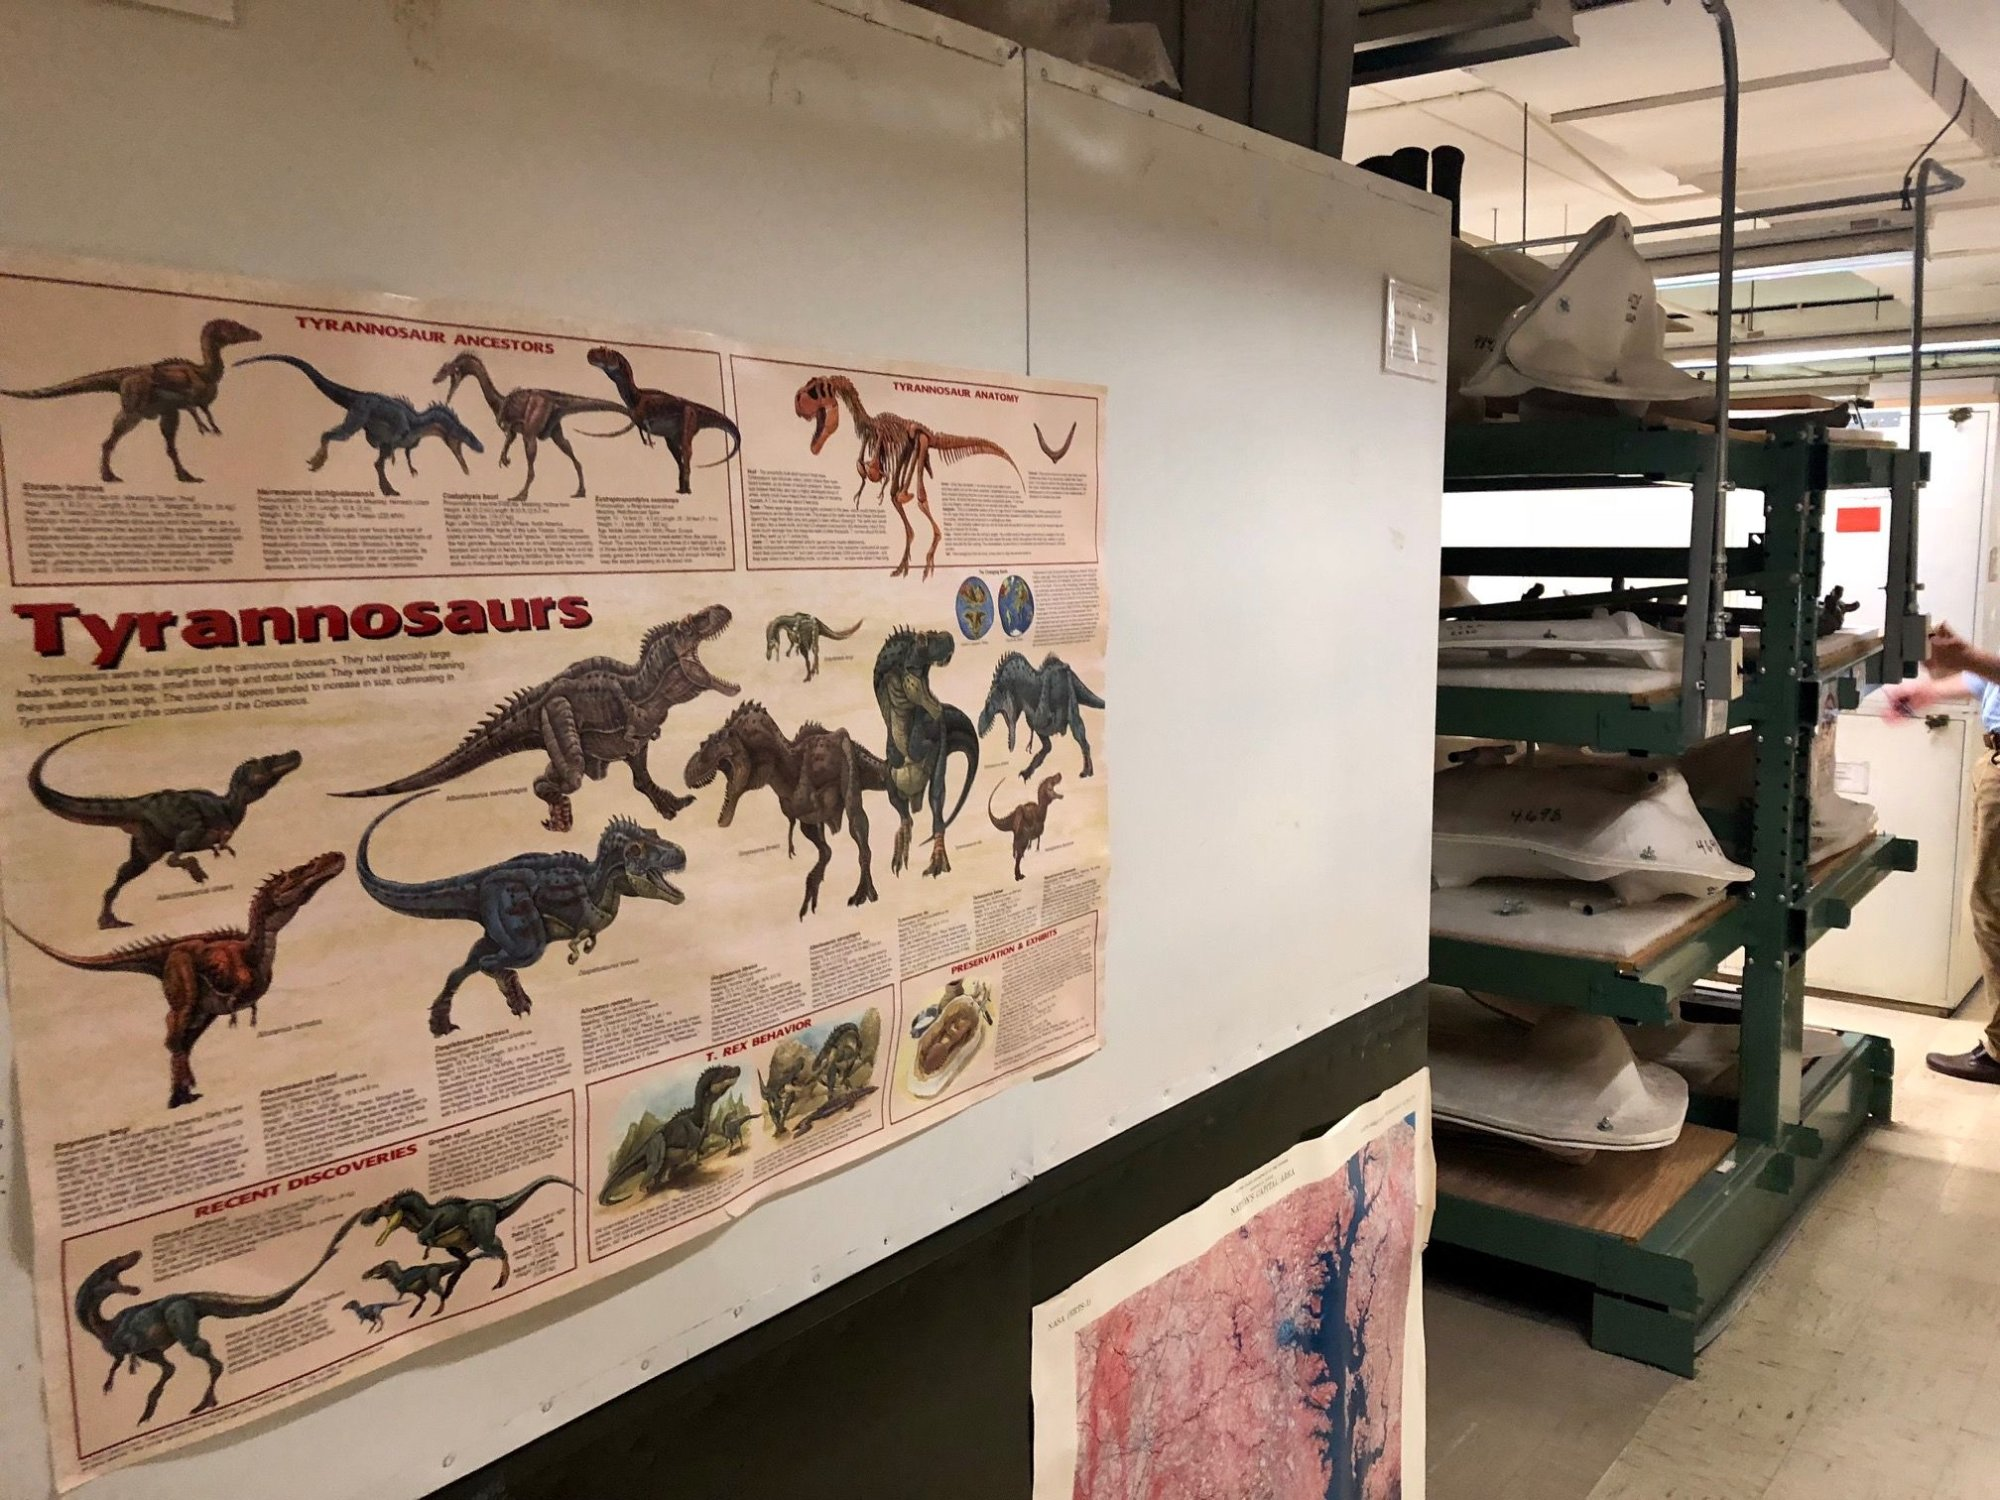 The much-anticipated reopening of the fossil hall will feature the return of the Tyrannosaurus rex. (WTOP/Megan Cloherty)